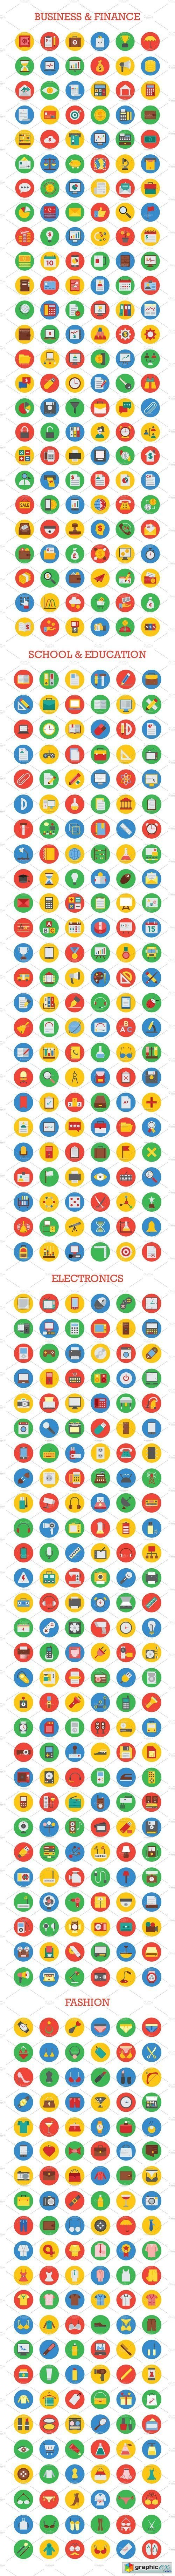 1500+ Material Icons Bundle